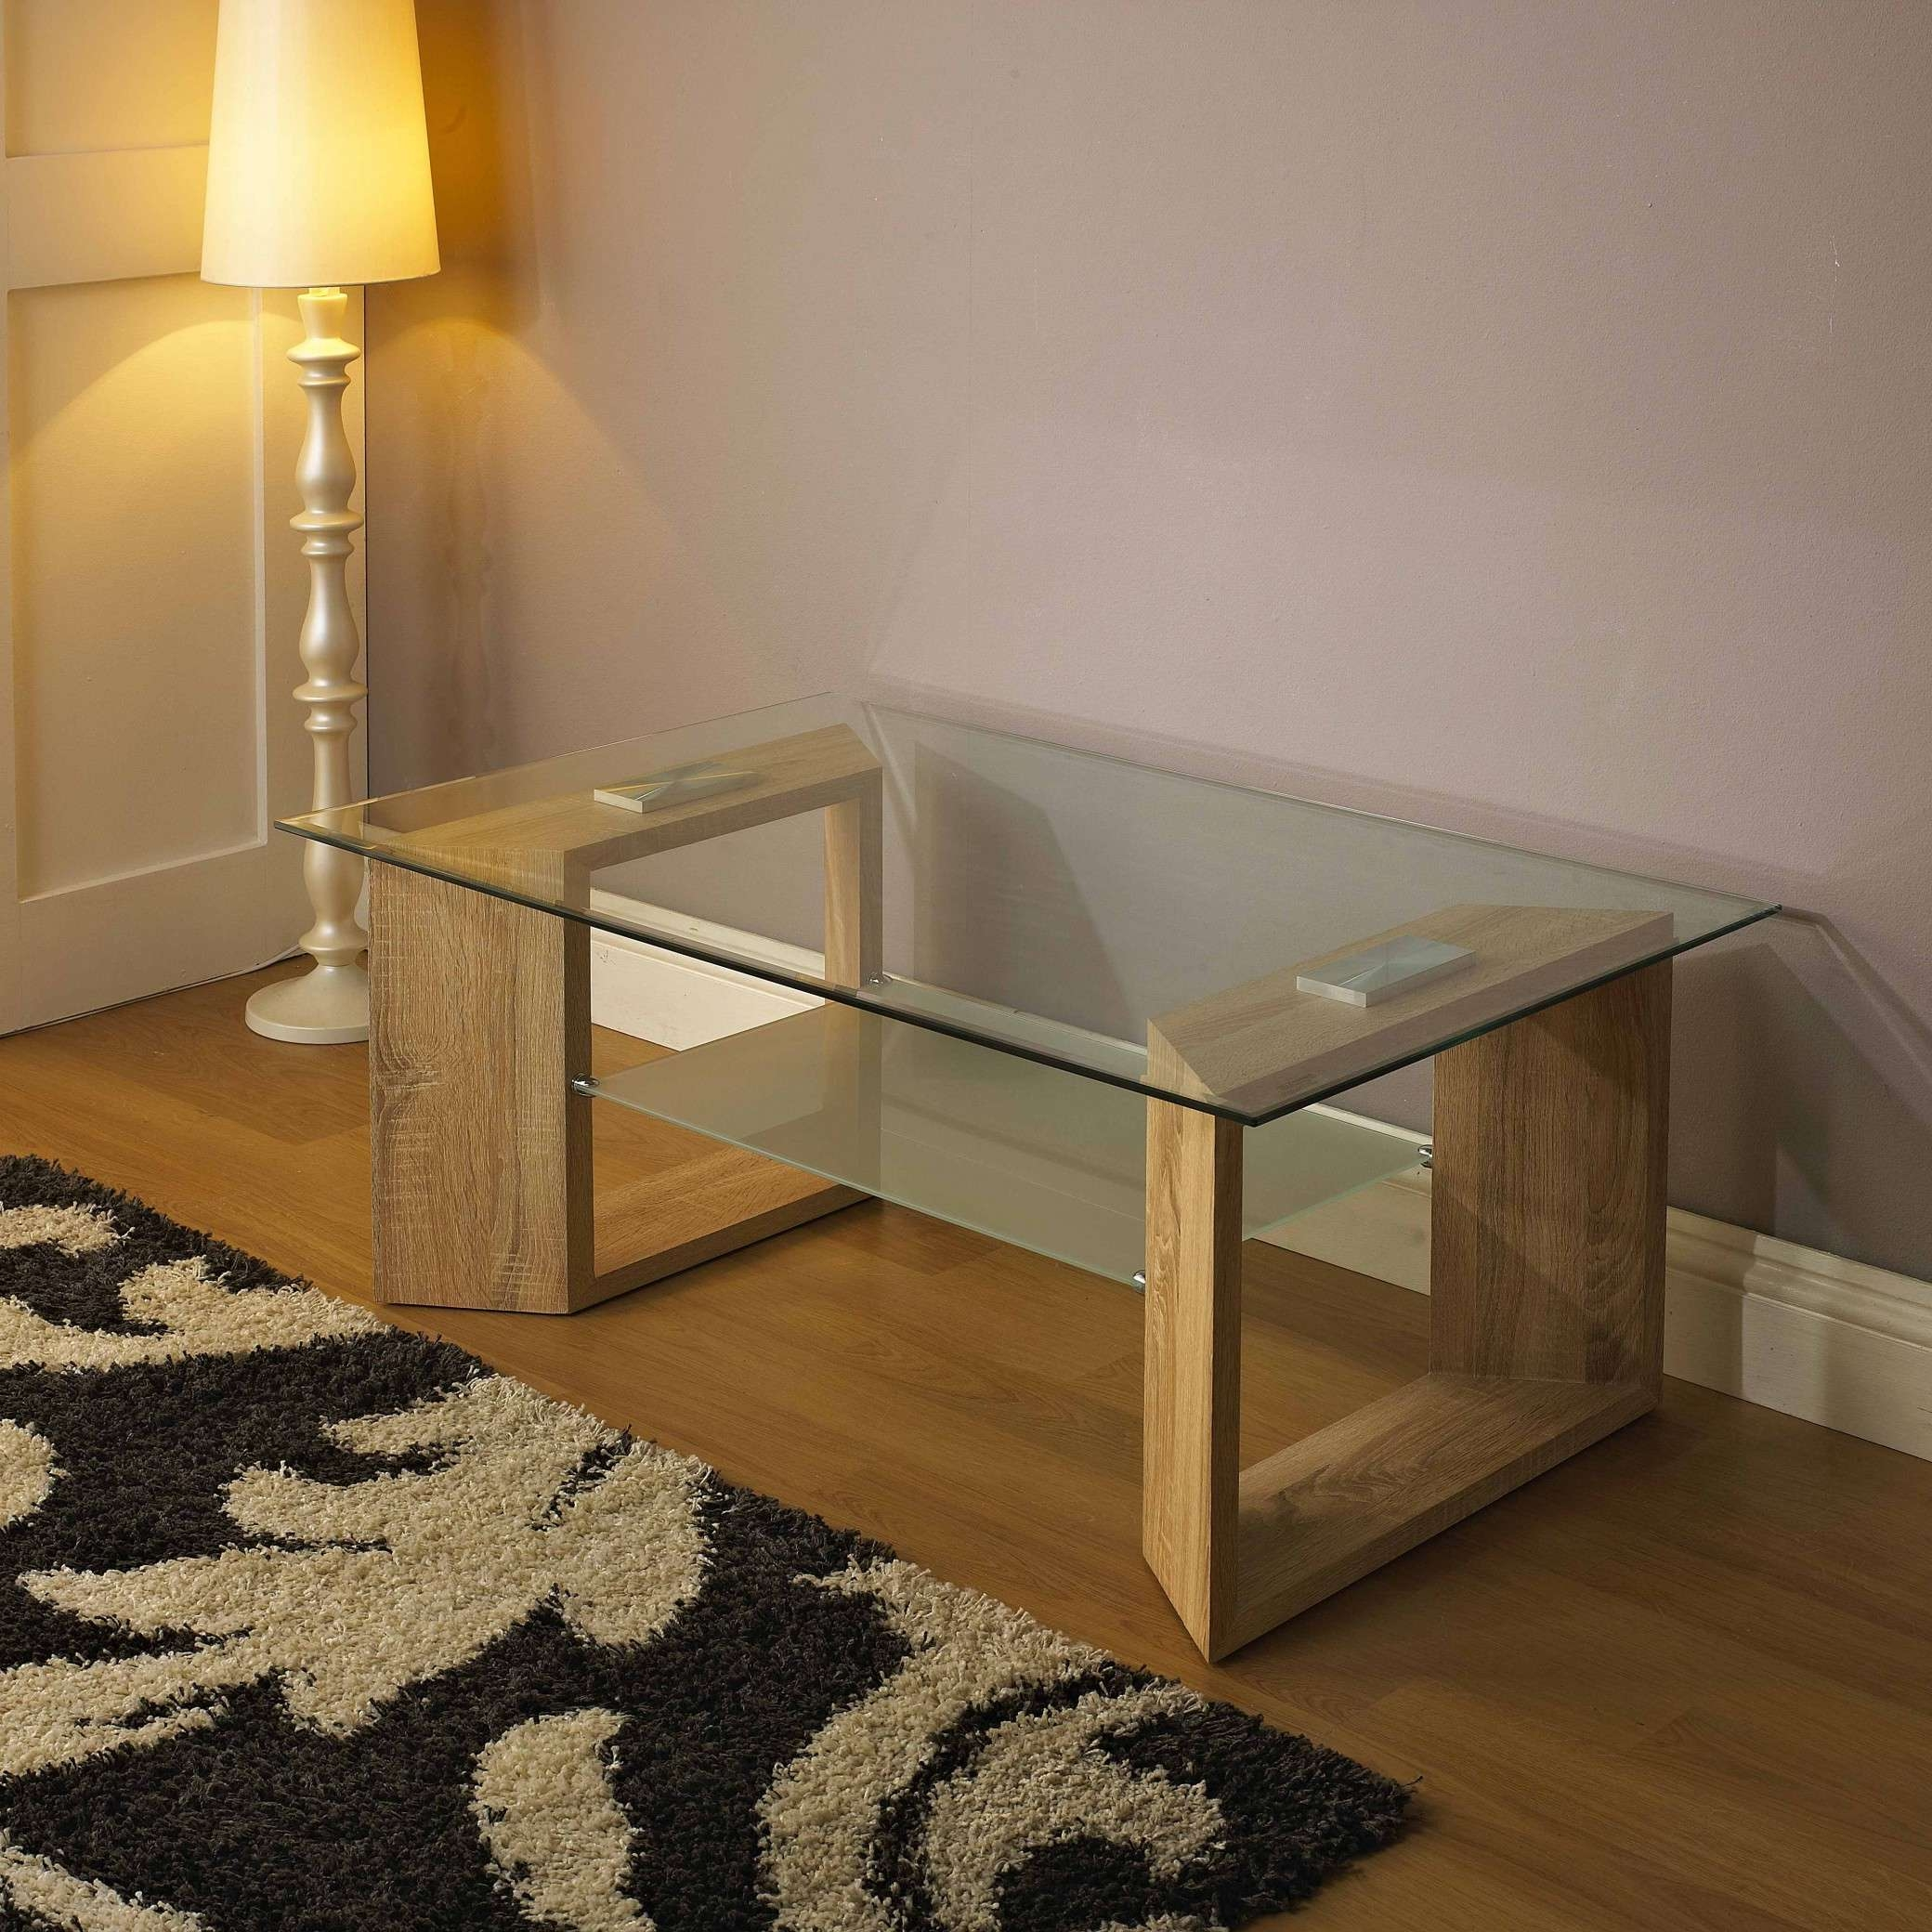 Midland Furniture Company With Favorite Glass And Oak Coffee Tables (View 14 of 20)